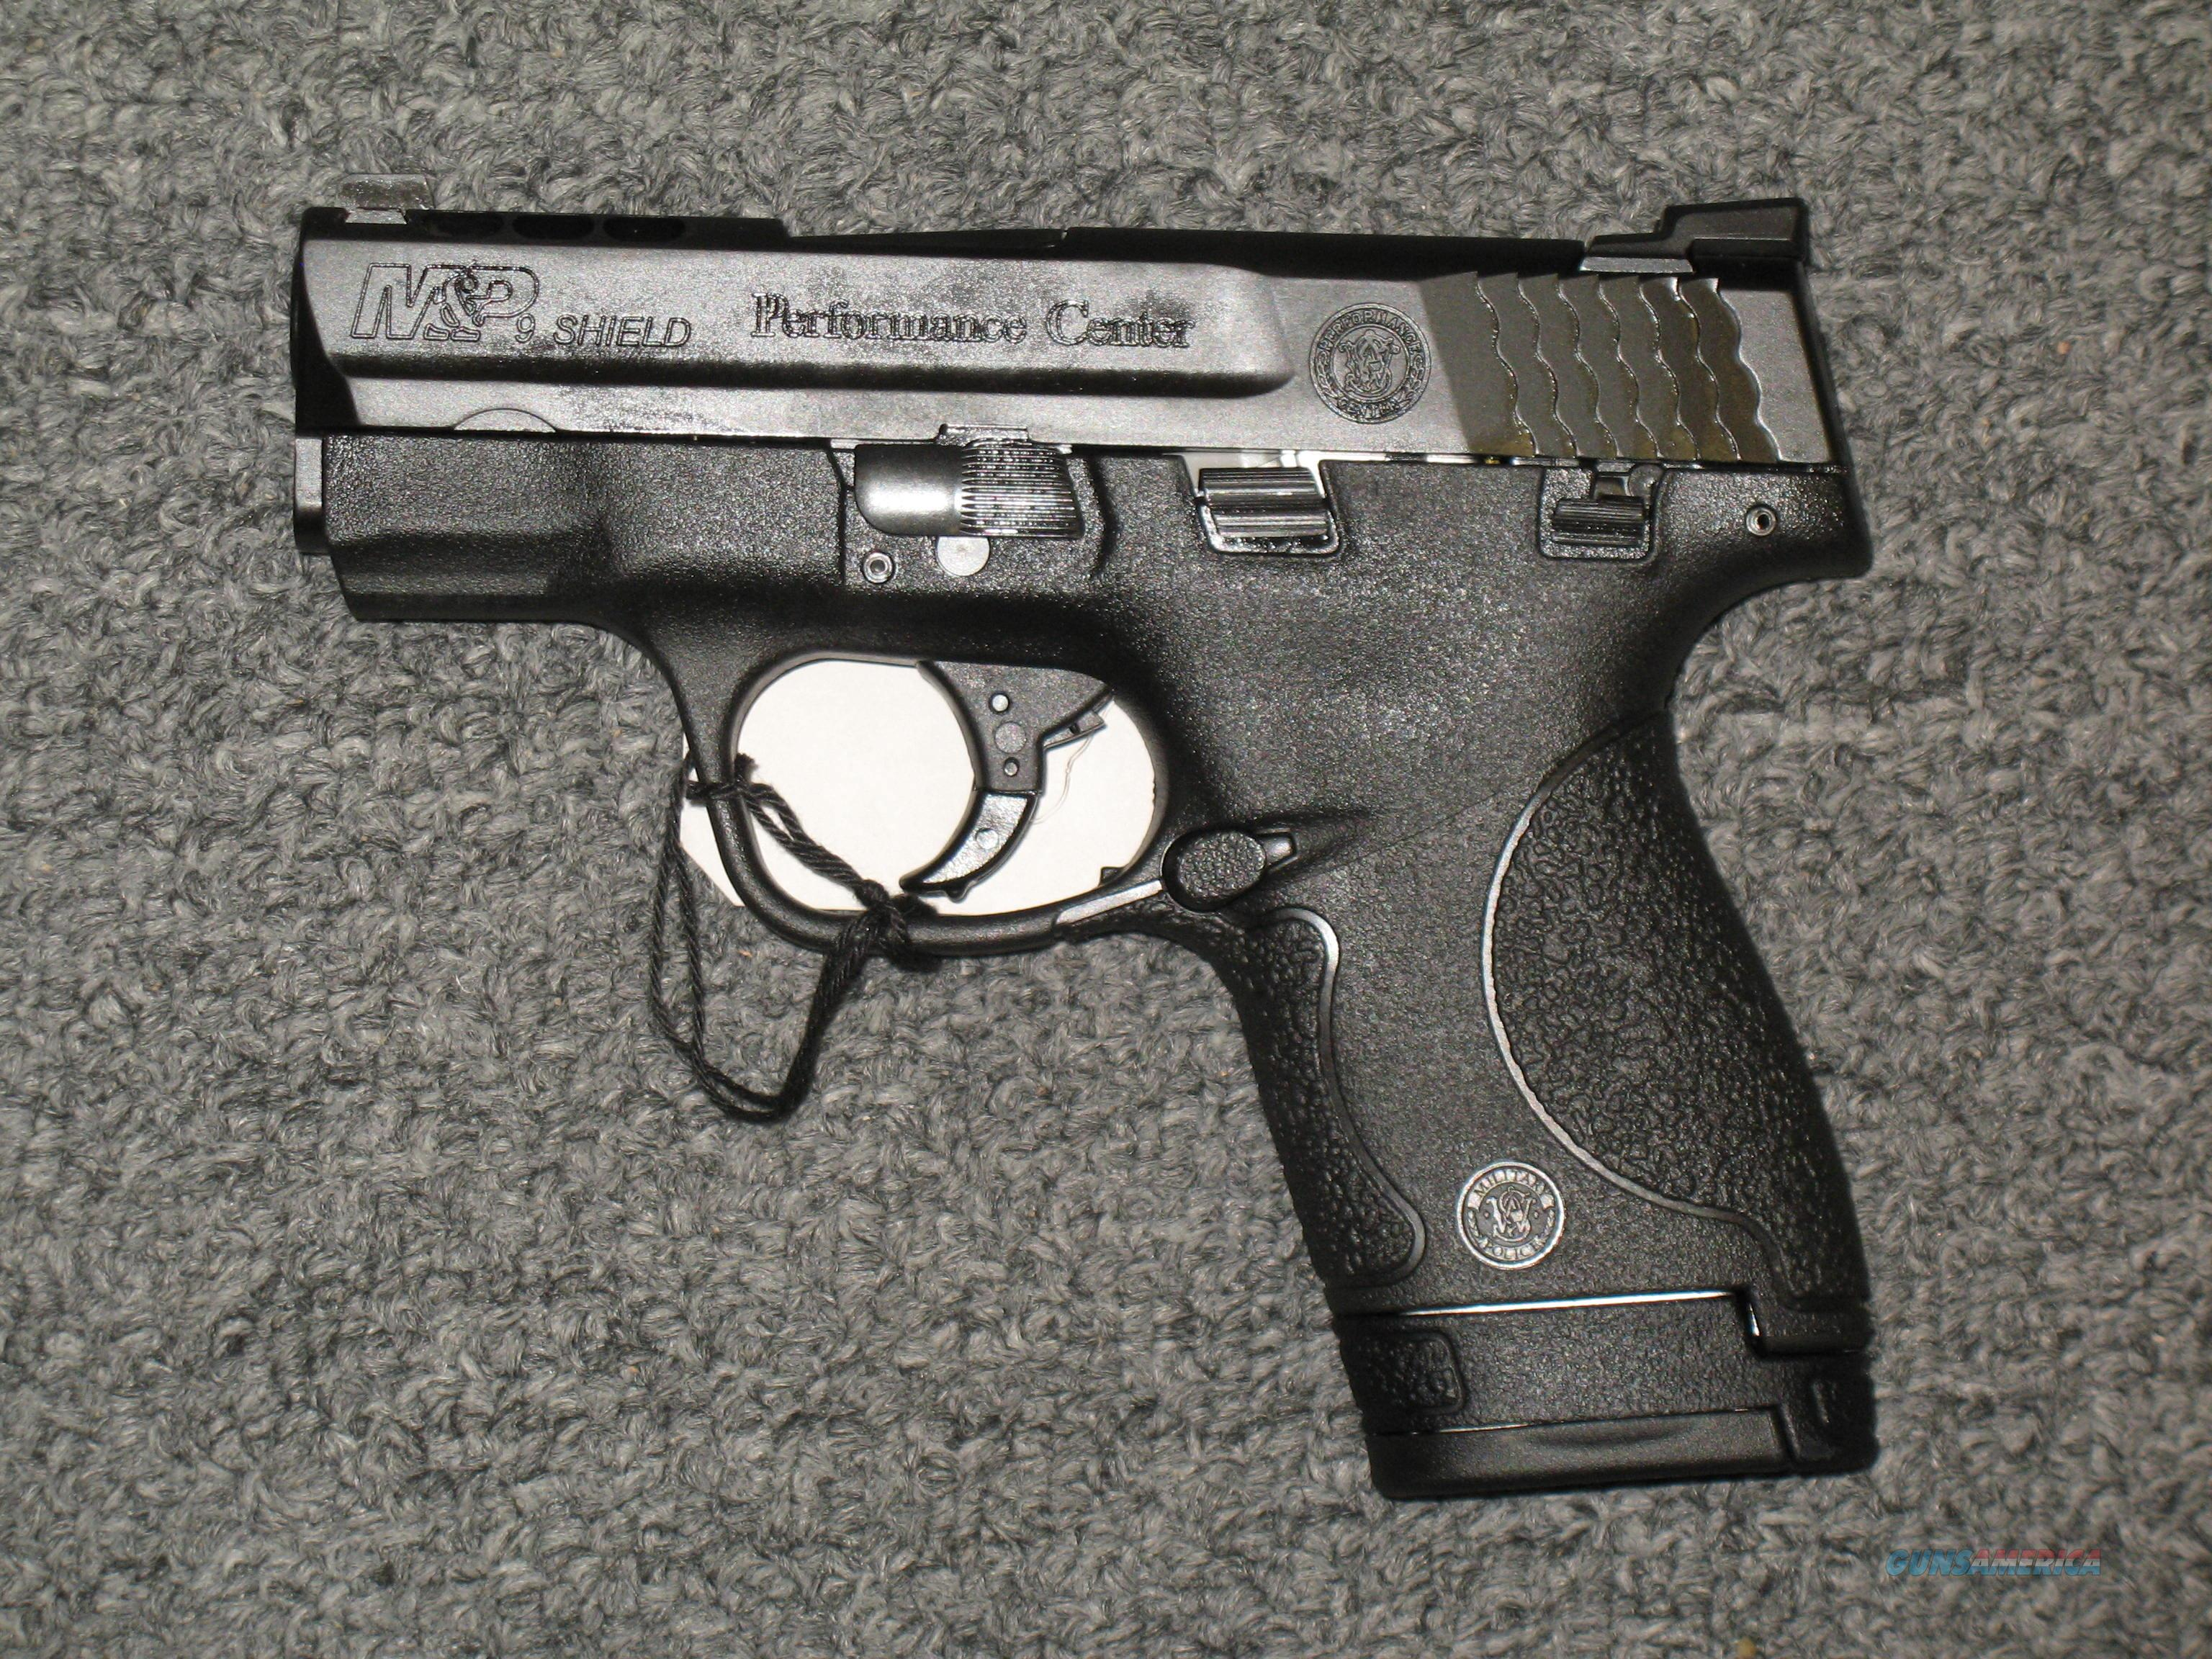 Smith & Wesson M&P9 Shield Performance Center (11630)  Guns > Pistols > Smith & Wesson Pistols - Autos > Shield